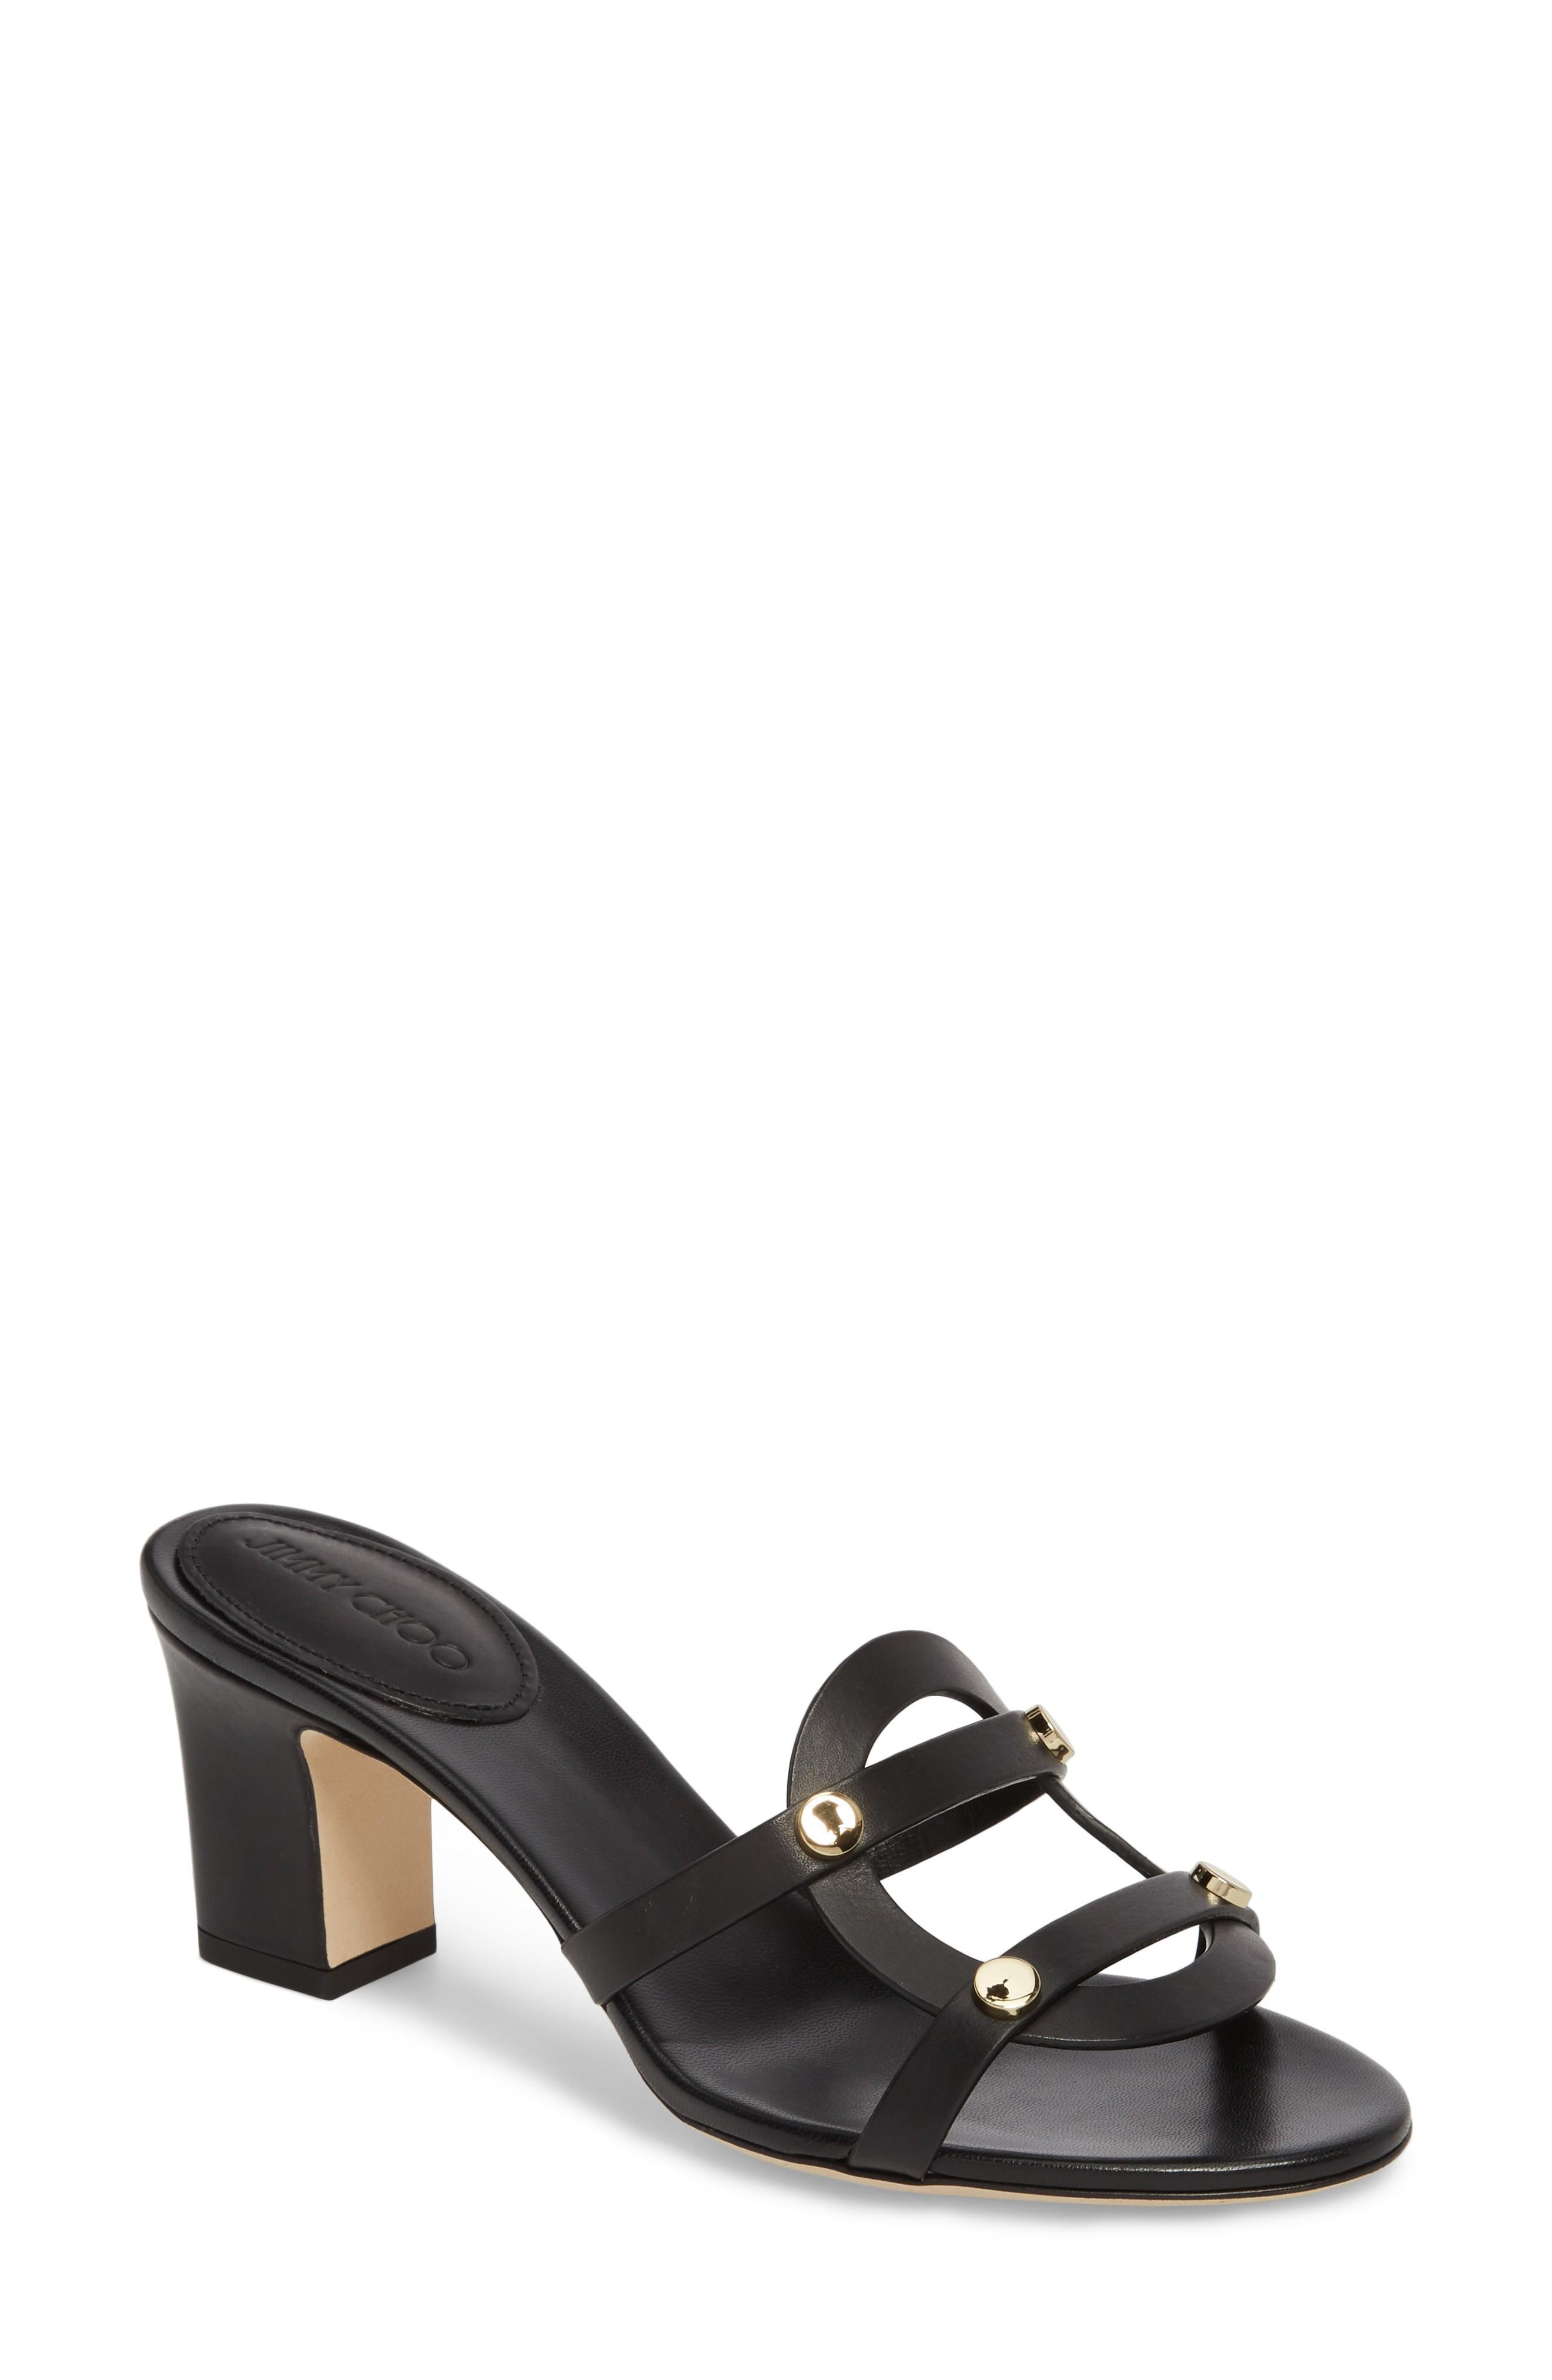 ea2948275ef Sculptural lines and gleaming hardware define a chic slide sandal grounded  by a chunky block heel. Style Name  Jimmy Choo Damaris Block Heel Sandal ( Women).